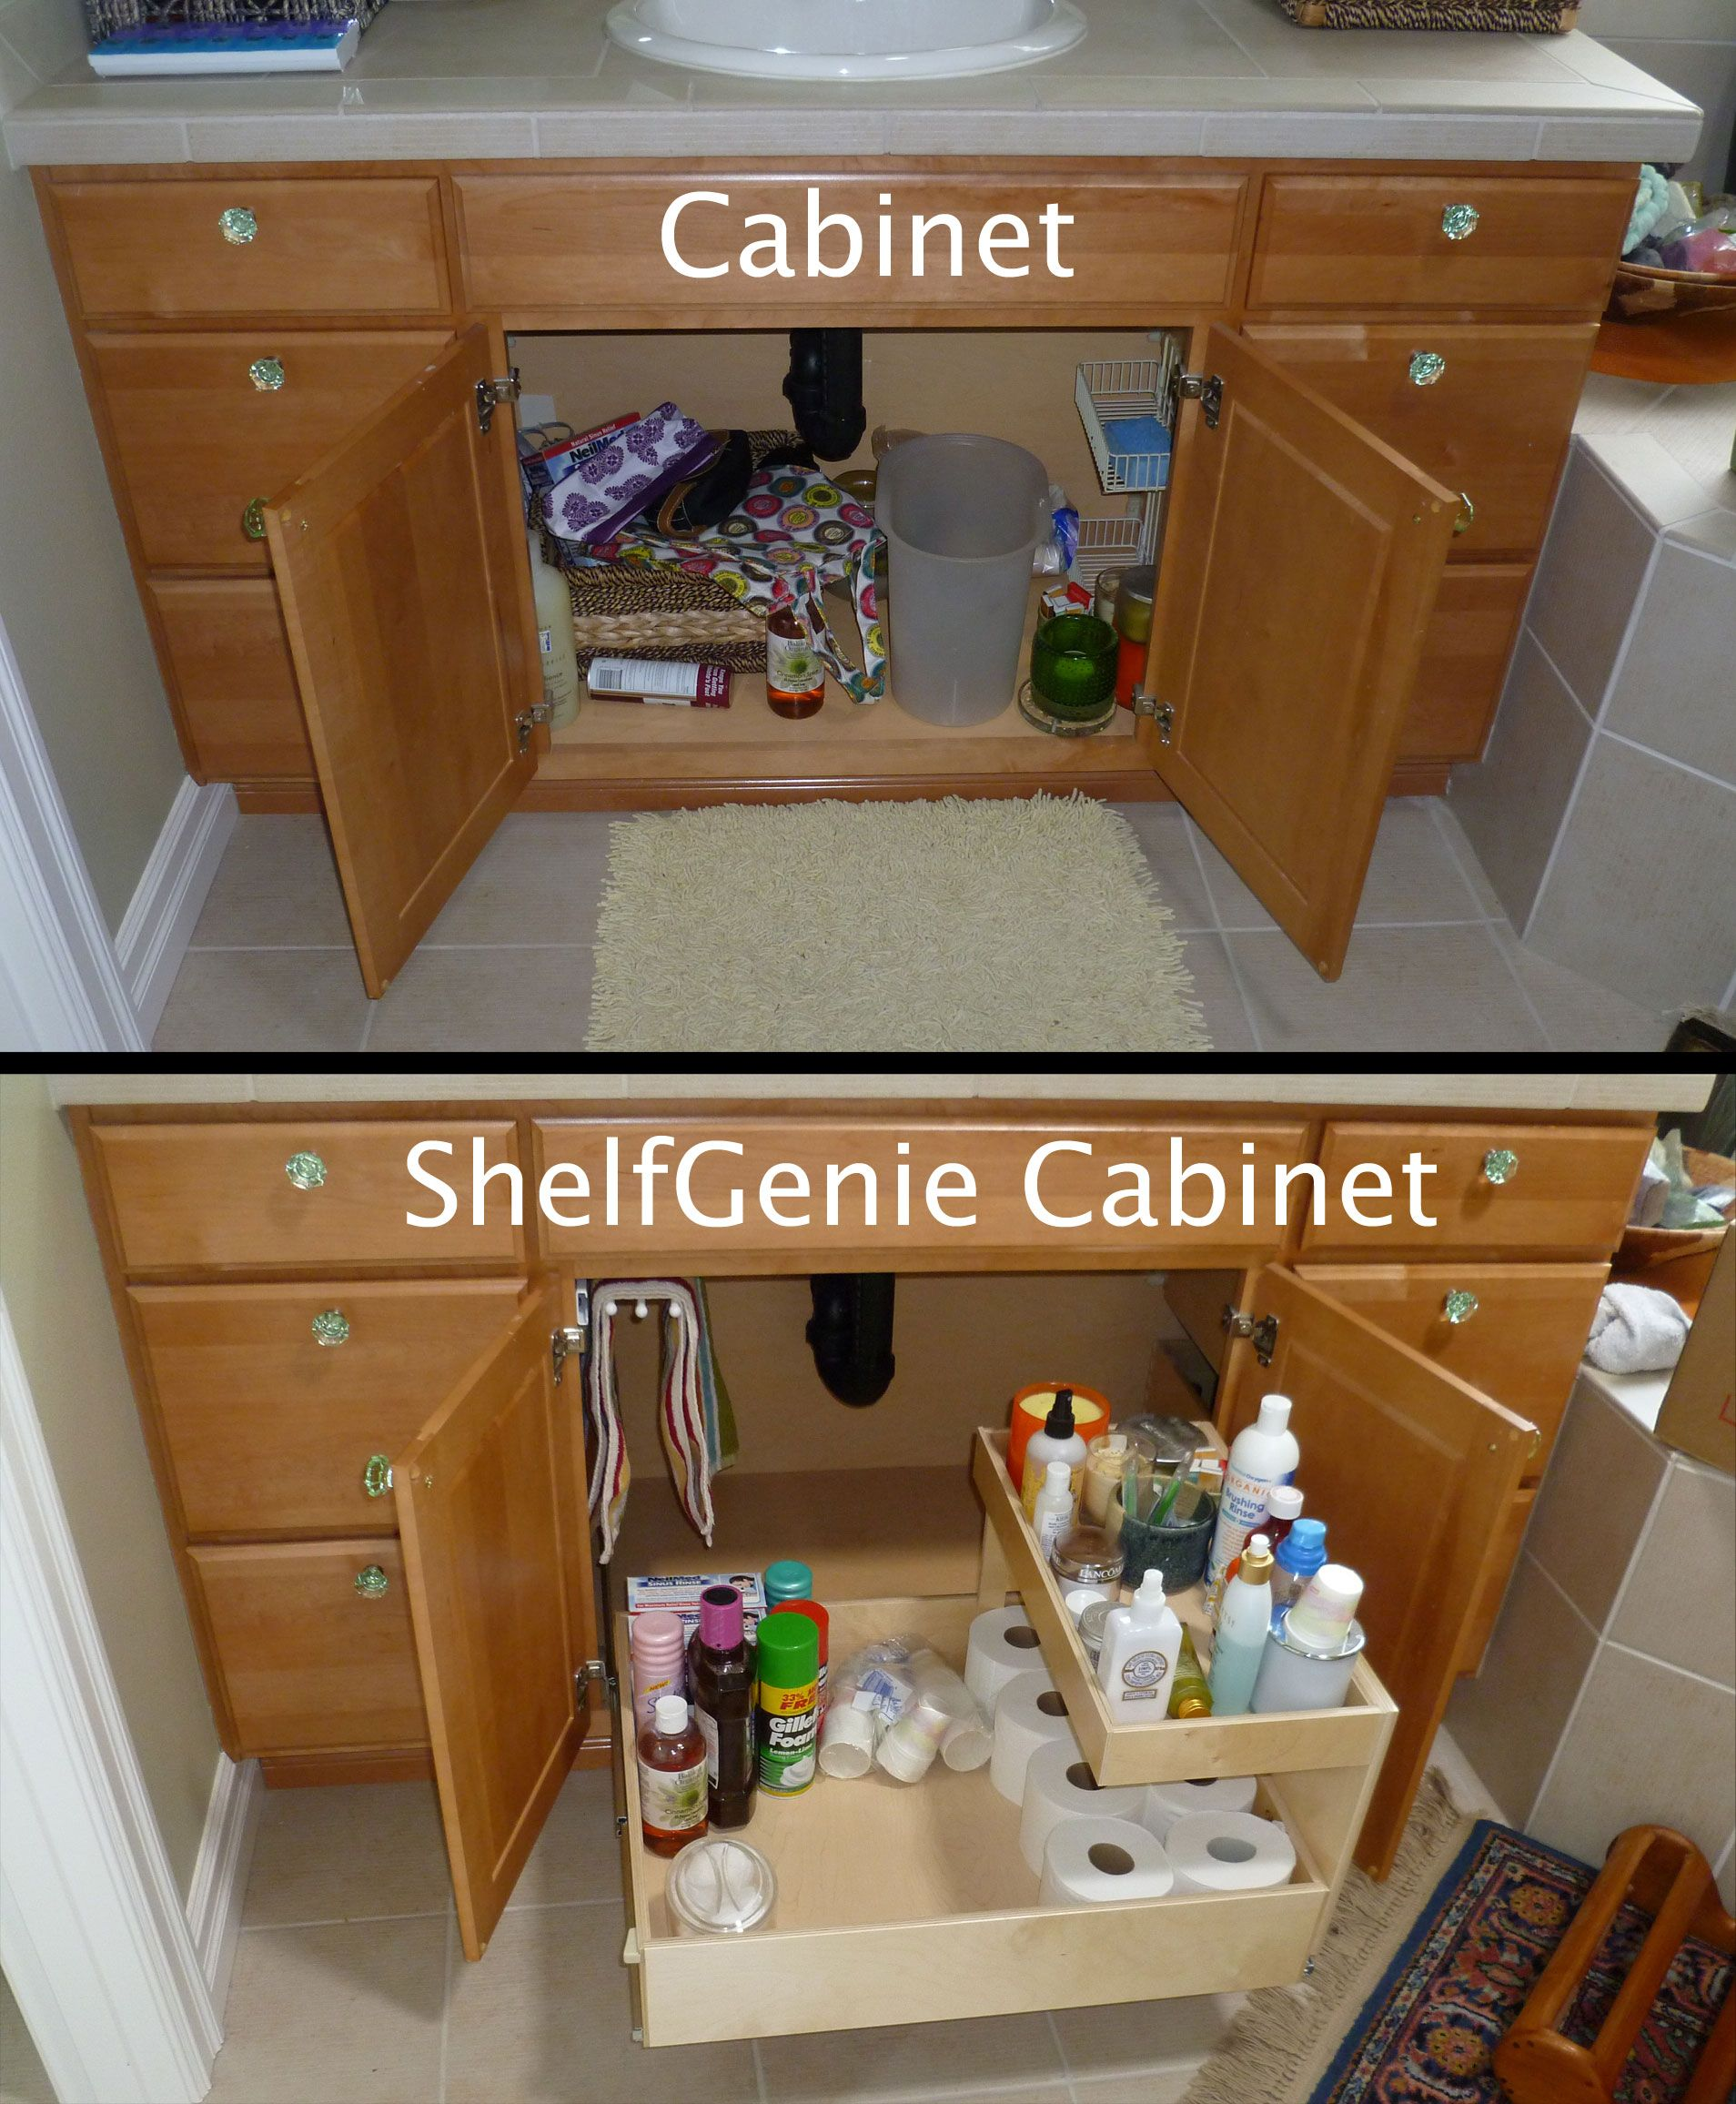 Deep Kitchen Cabinet Solutions: The Recipe For Turning This Cabinet Into A ShelfGenie